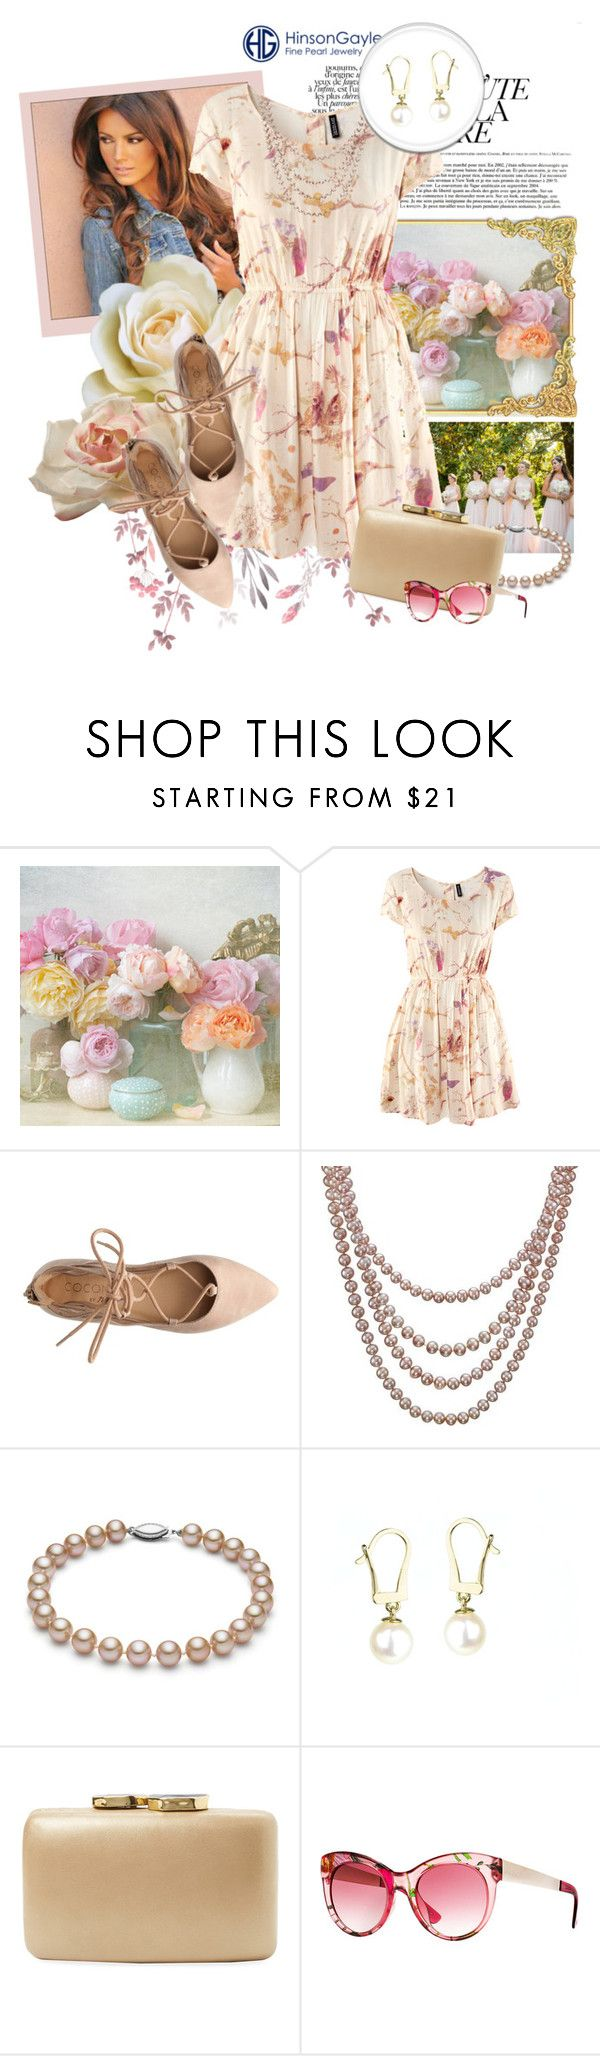 """""""HinsonGayle"""" by sierraday ❤ liked on Polyvore featuring Primp, H&M, Kayu and Gucci"""